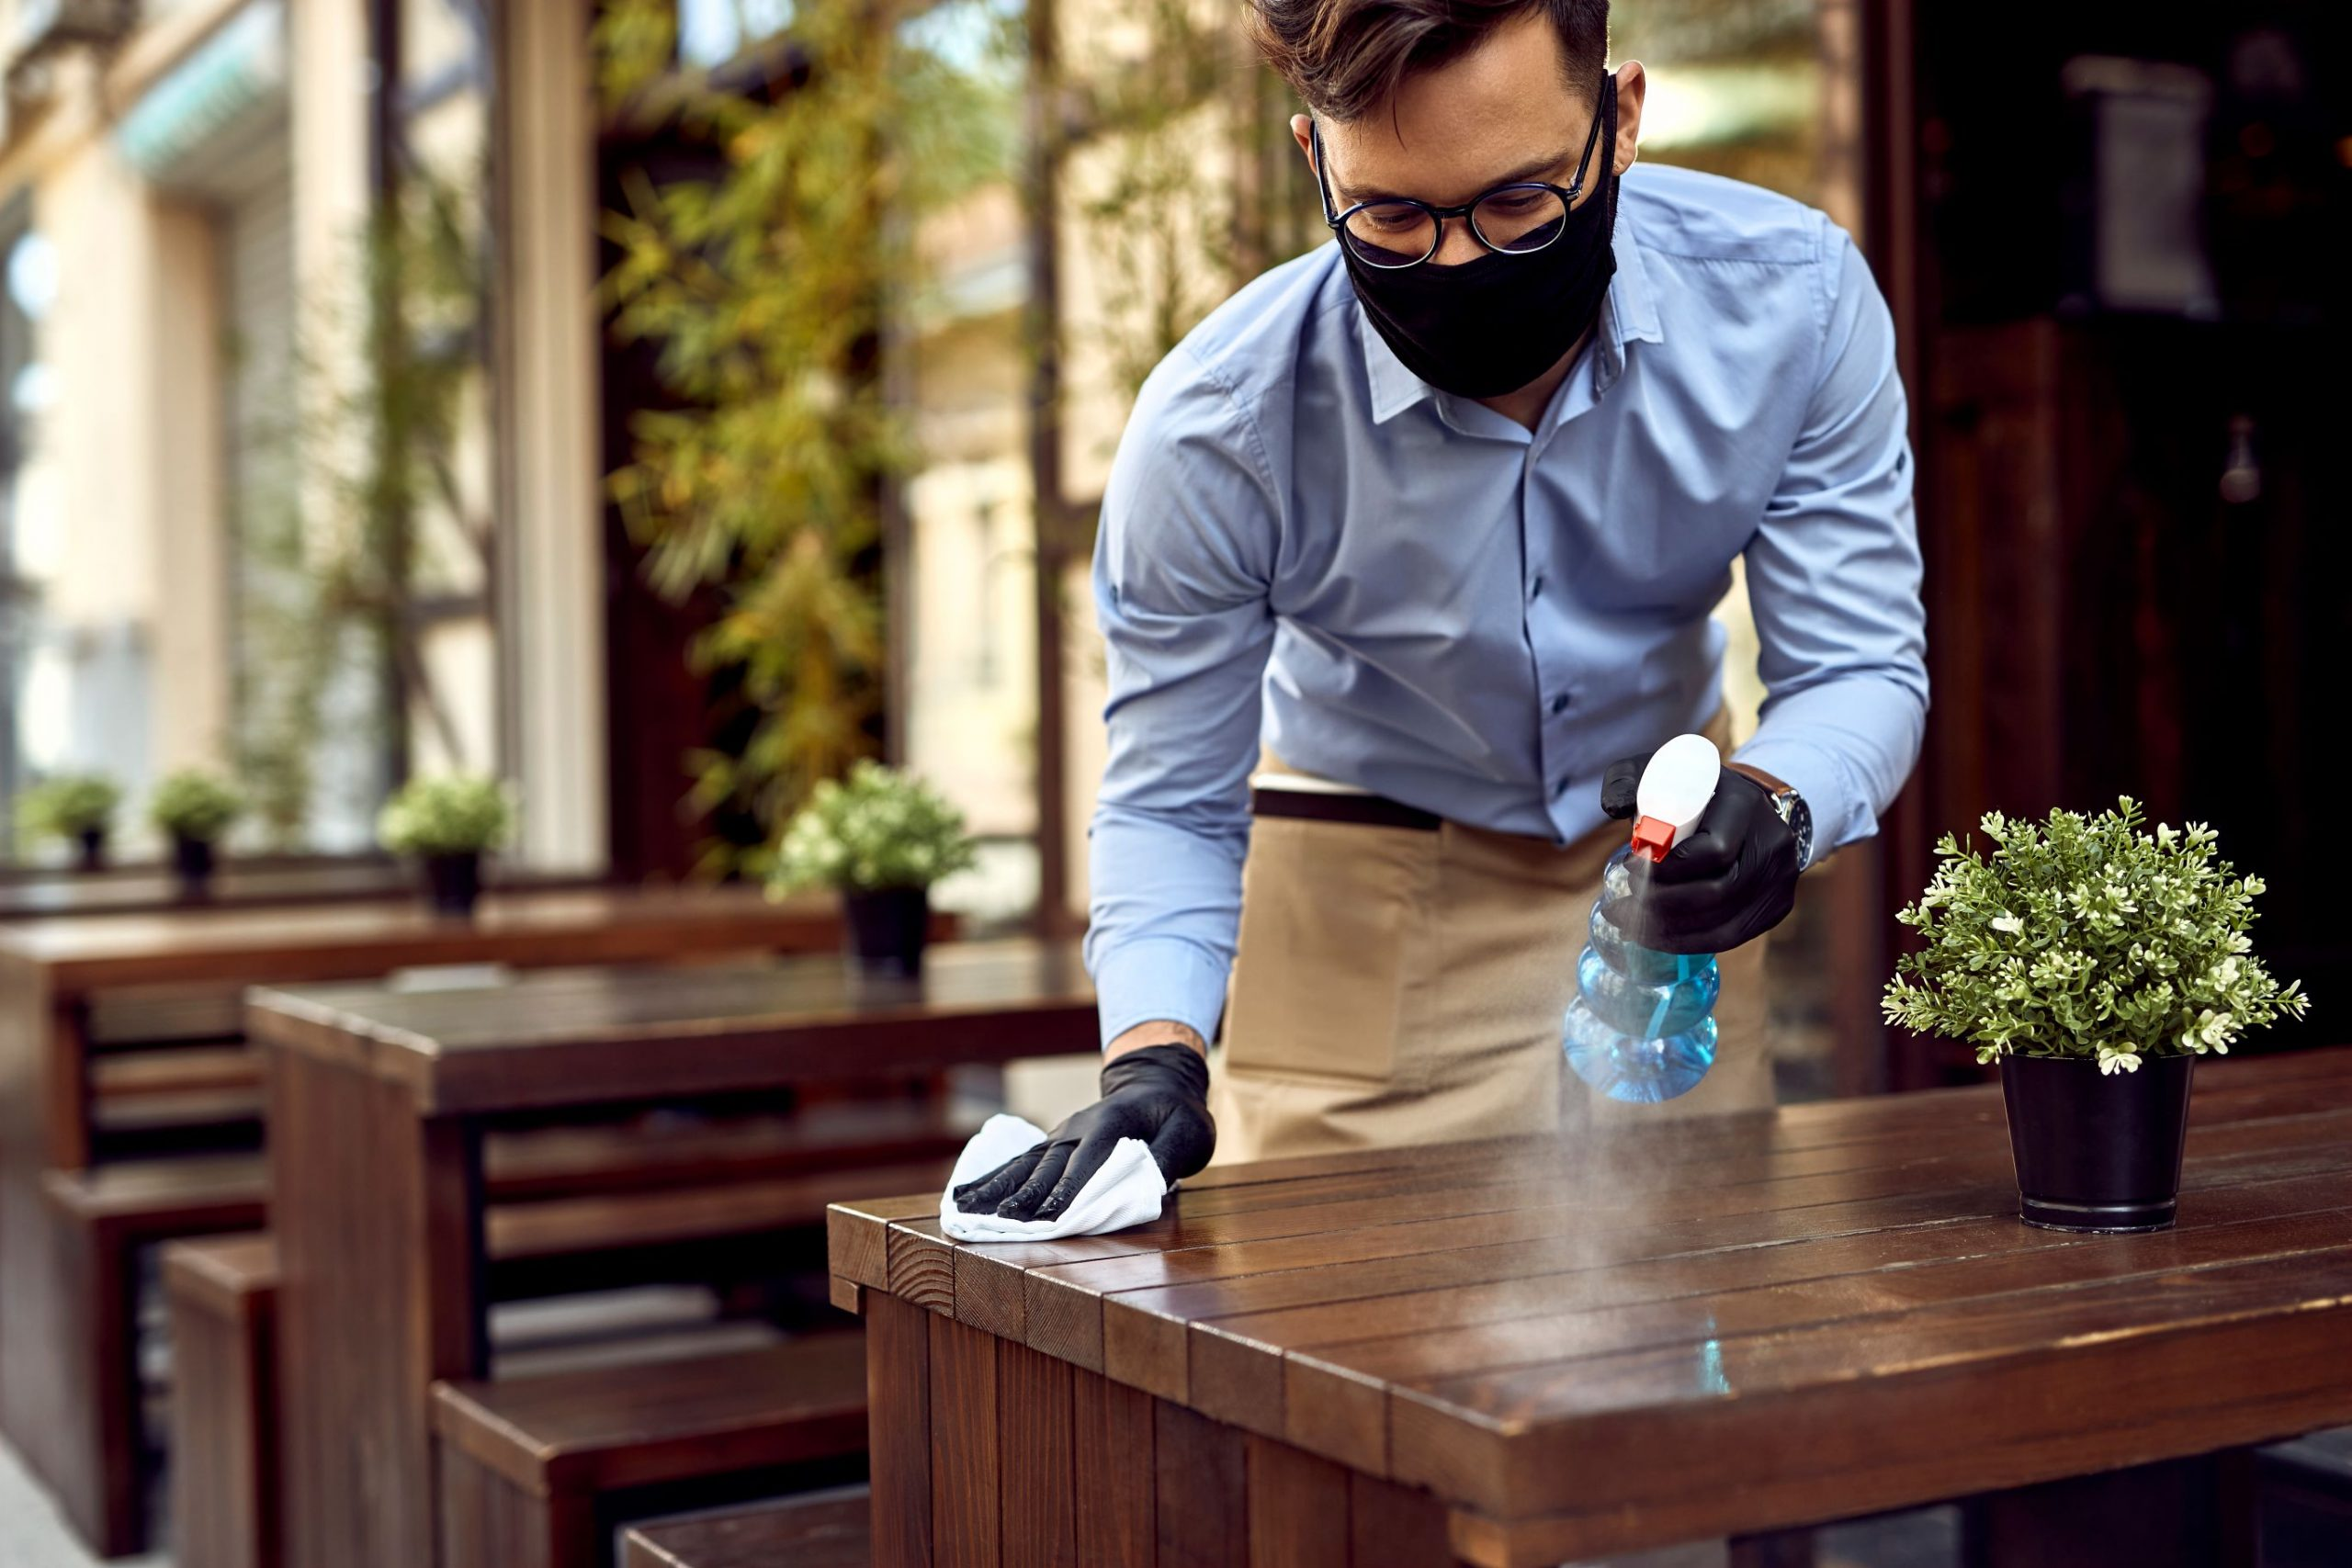 Waiter disinfecting table during COVID-19 | Featured image for HLTSS ICHS64 FOR HOSPITALITY.